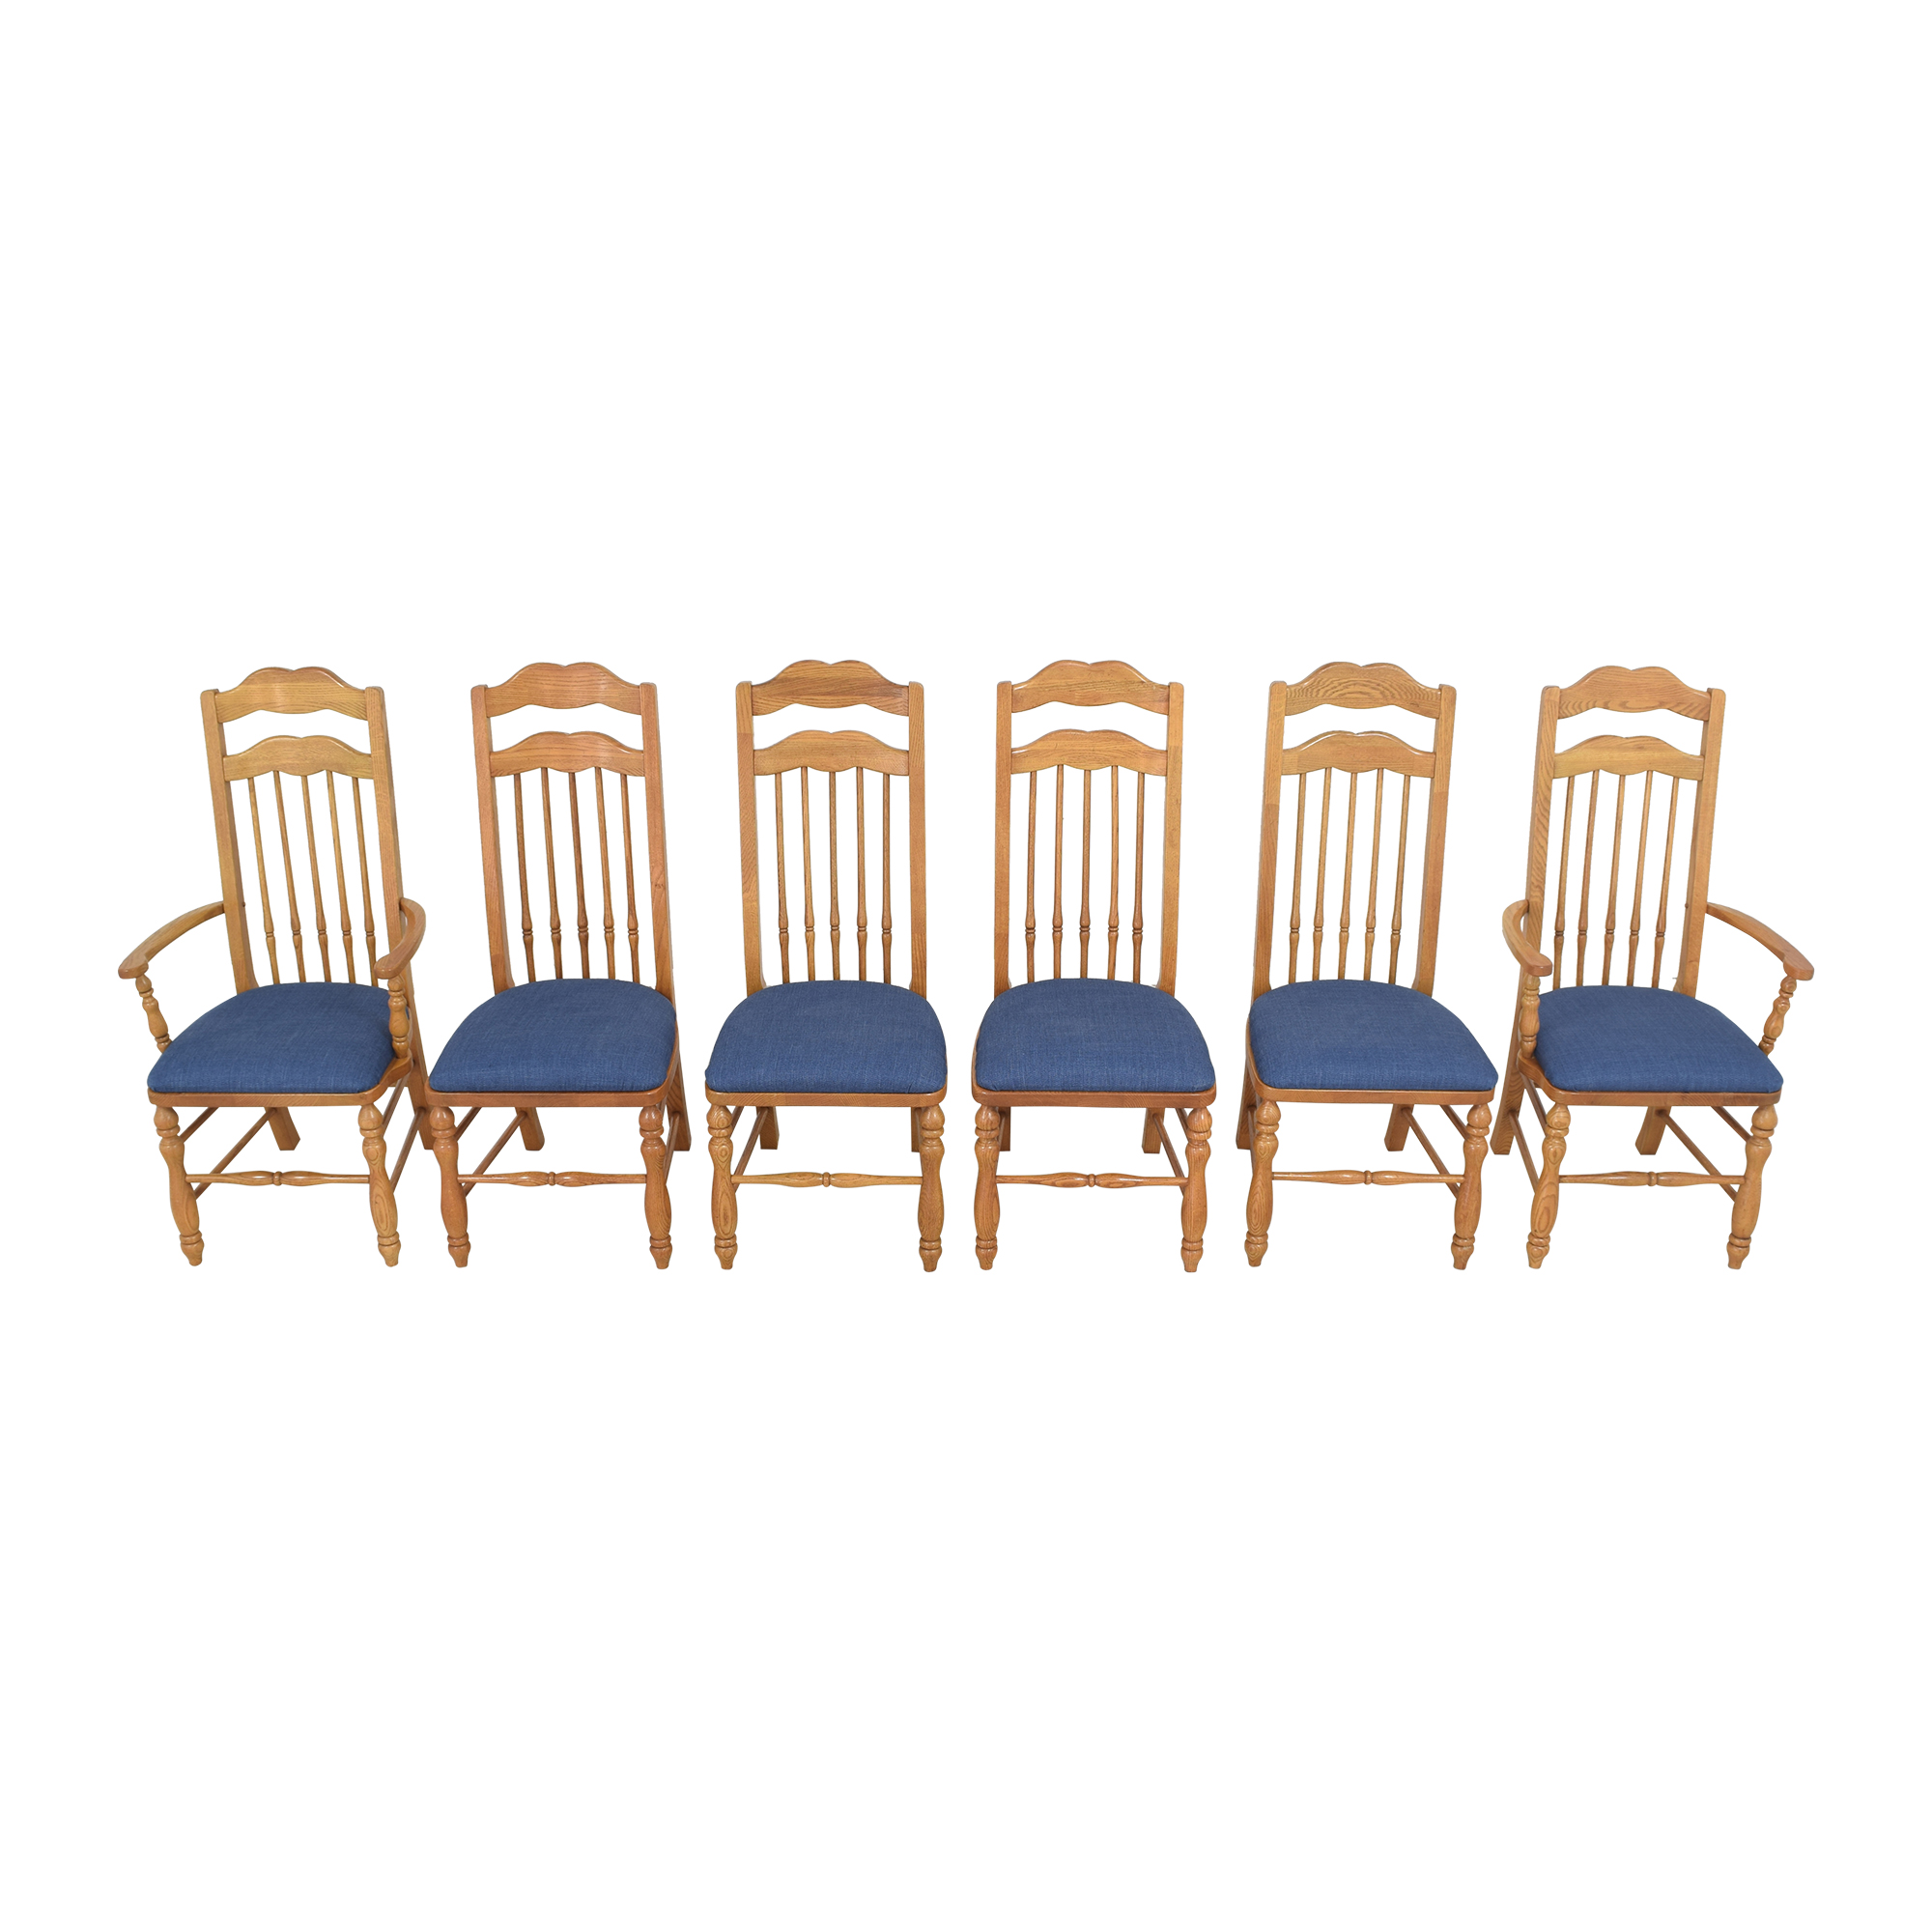 Thomasville High Back Dining Chairs / Chairs